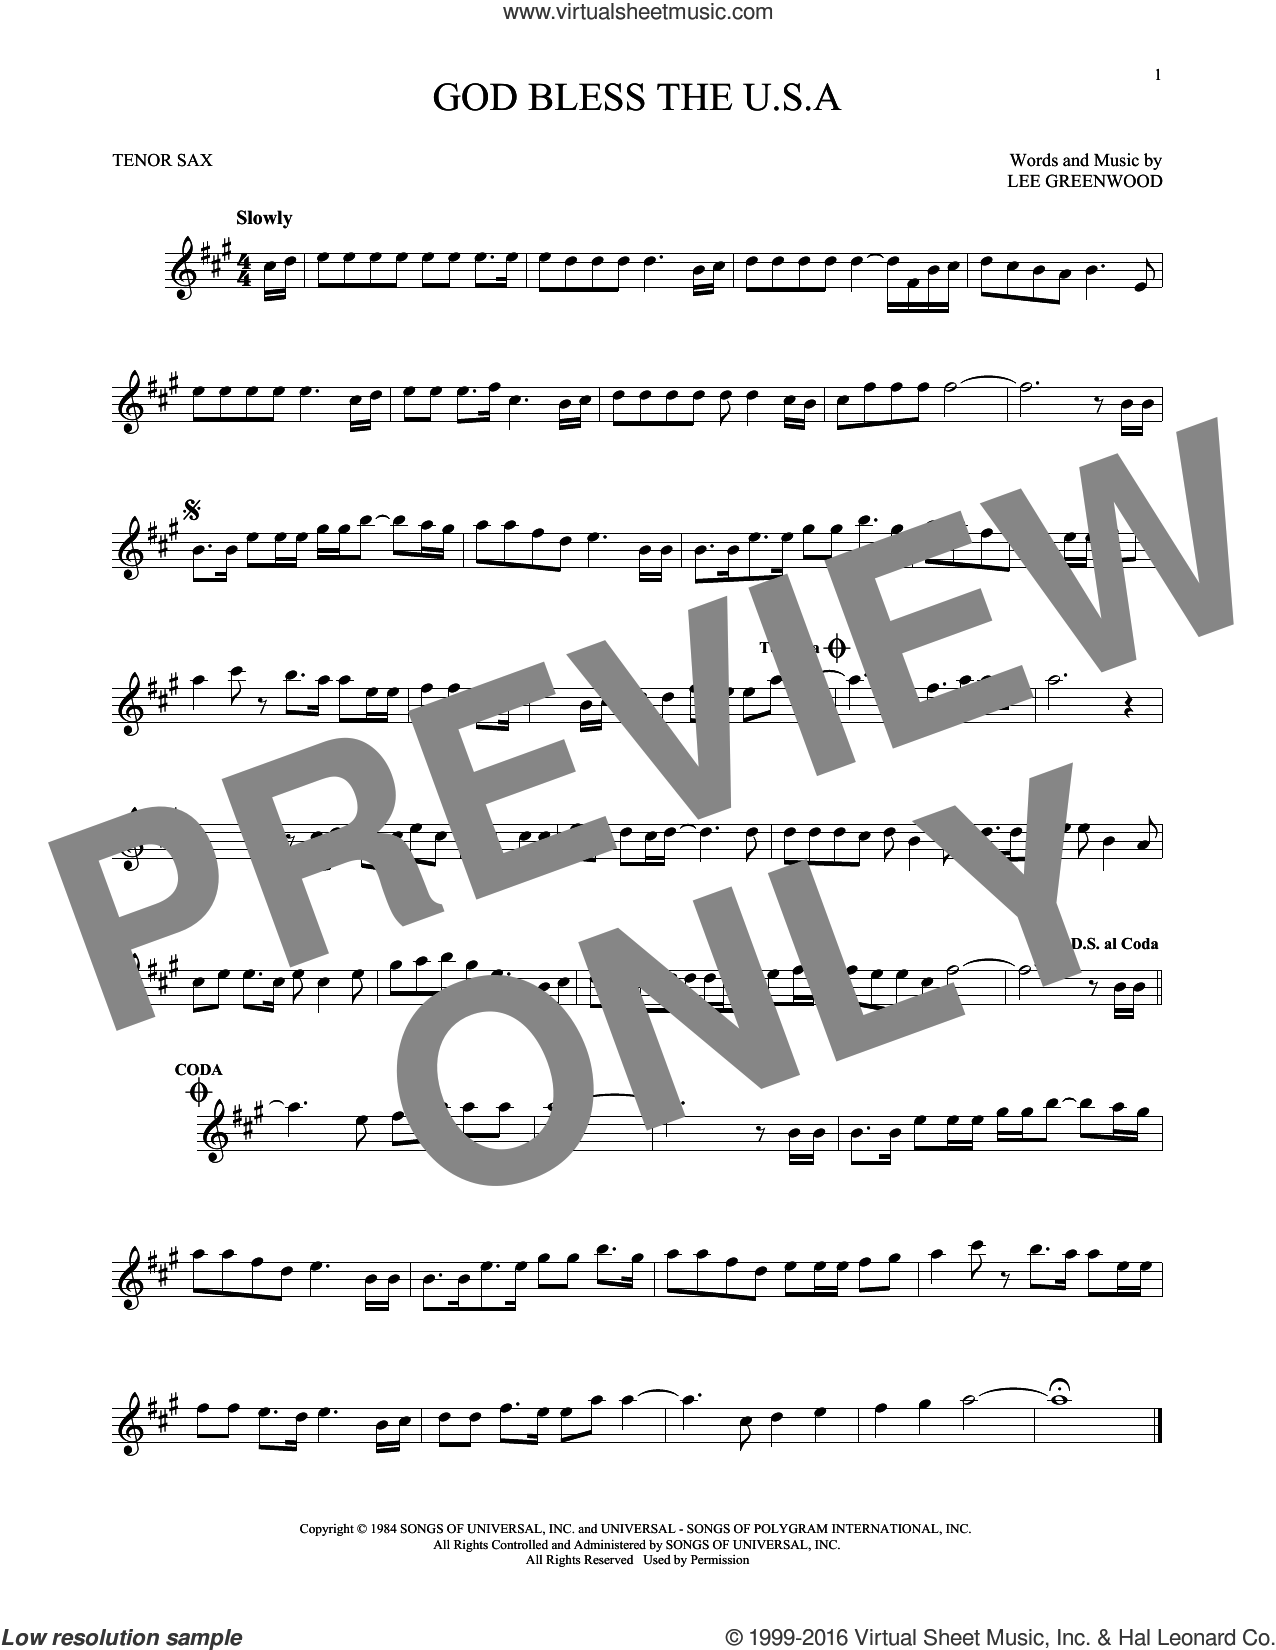 God Bless The U.S.A. sheet music for tenor saxophone solo by Lee Greenwood, intermediate skill level